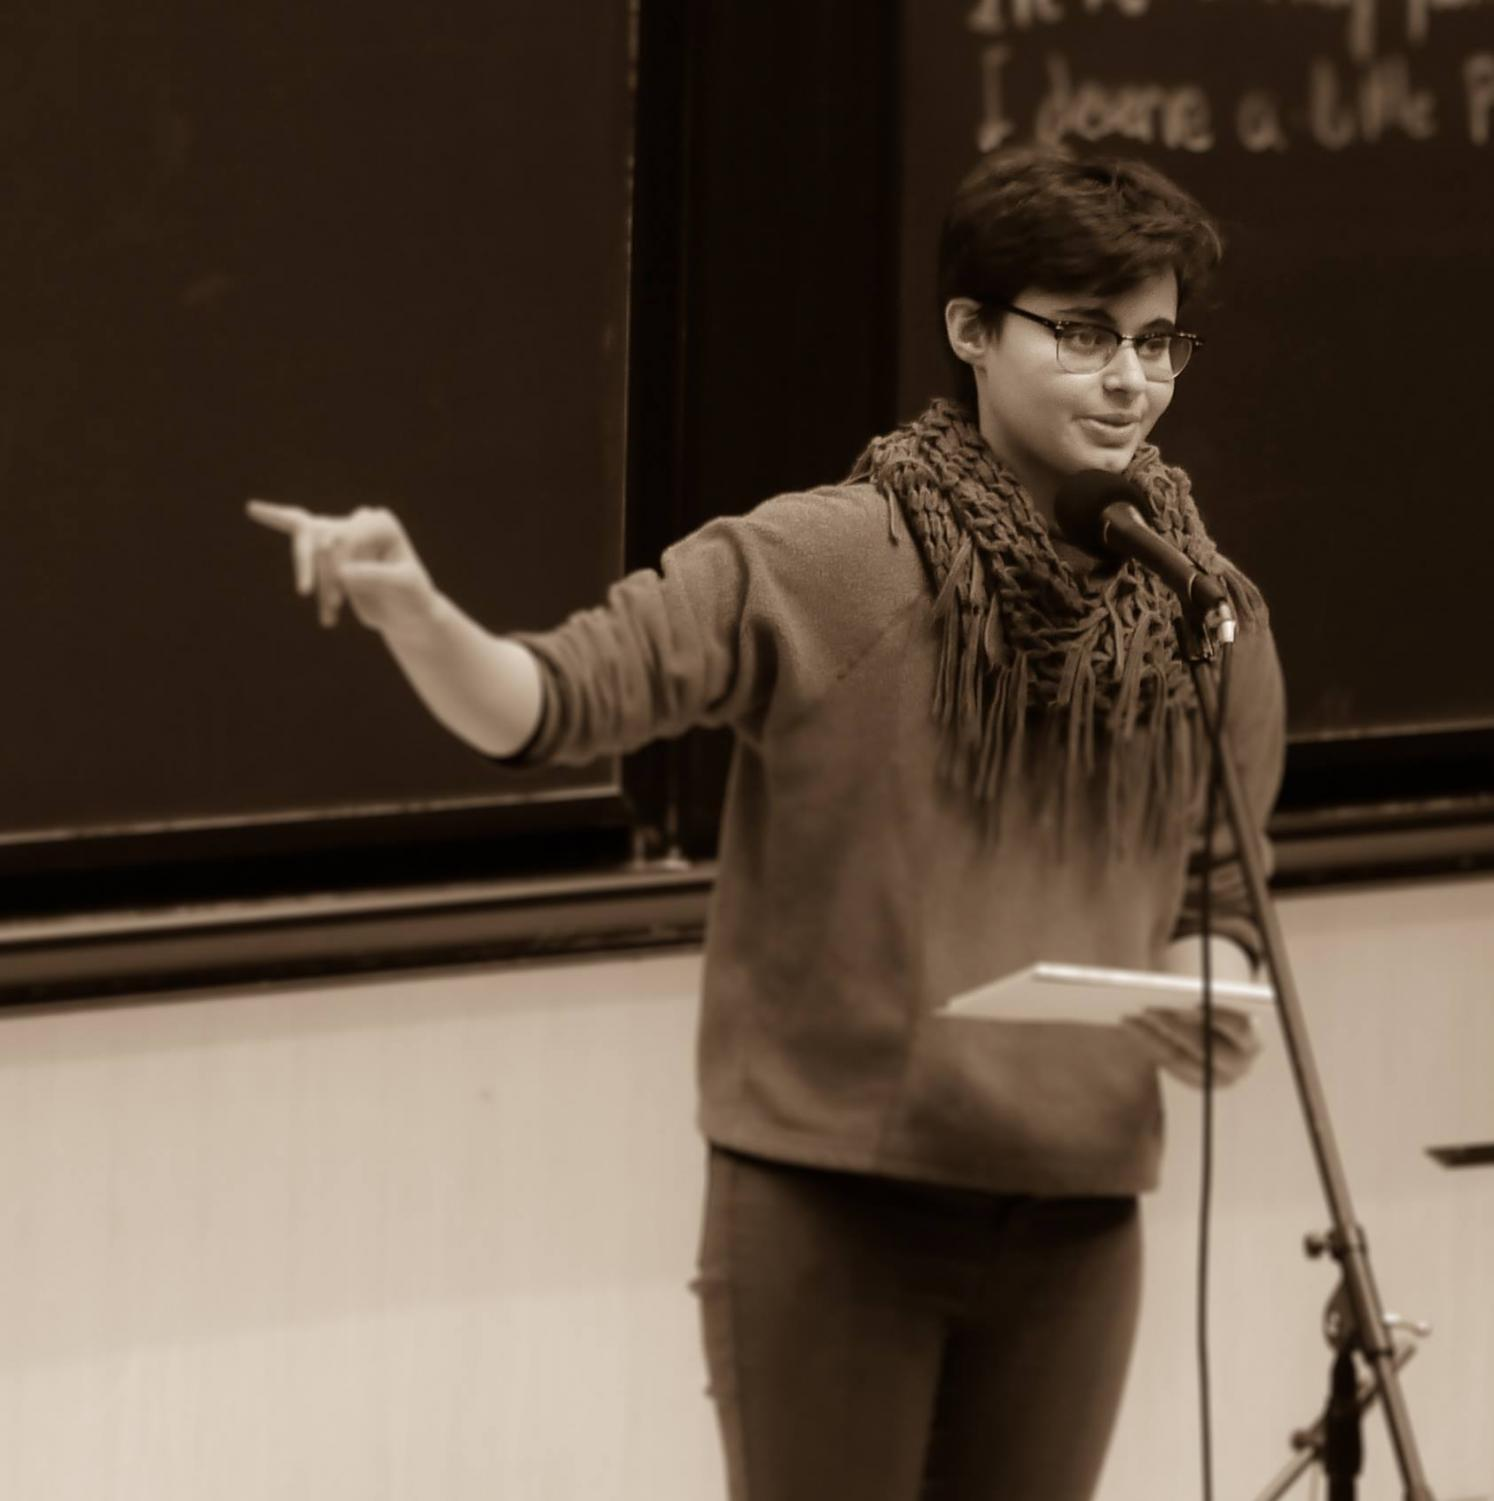 Junior Naomi Mirny is an active member of the Slam Poetry Club. She also expresses herself through visual art, acting and more.